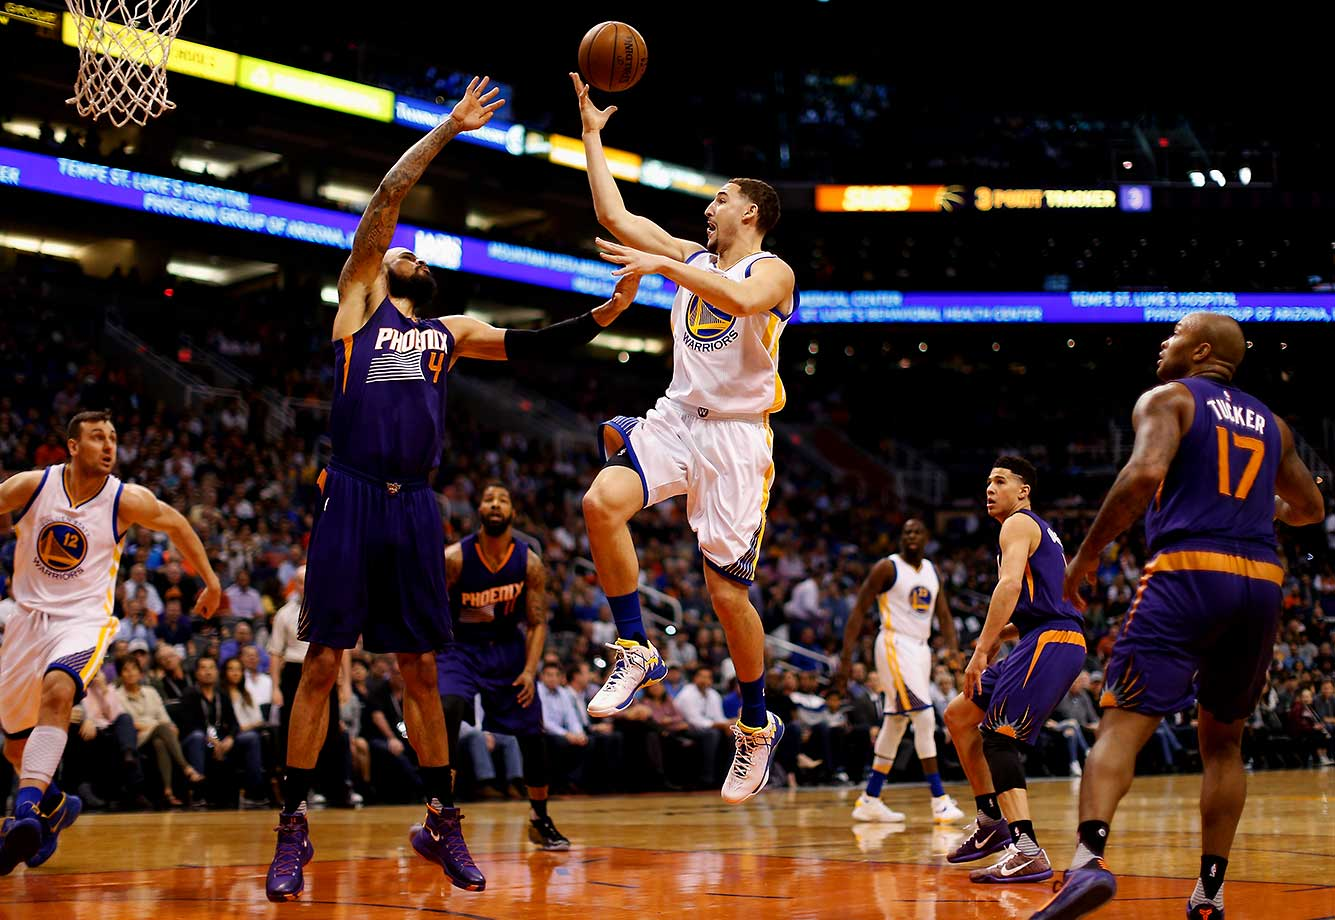 Klay Thompson of Golden State puts up a shot over Tyson Chandler of the Phoenix Suns.